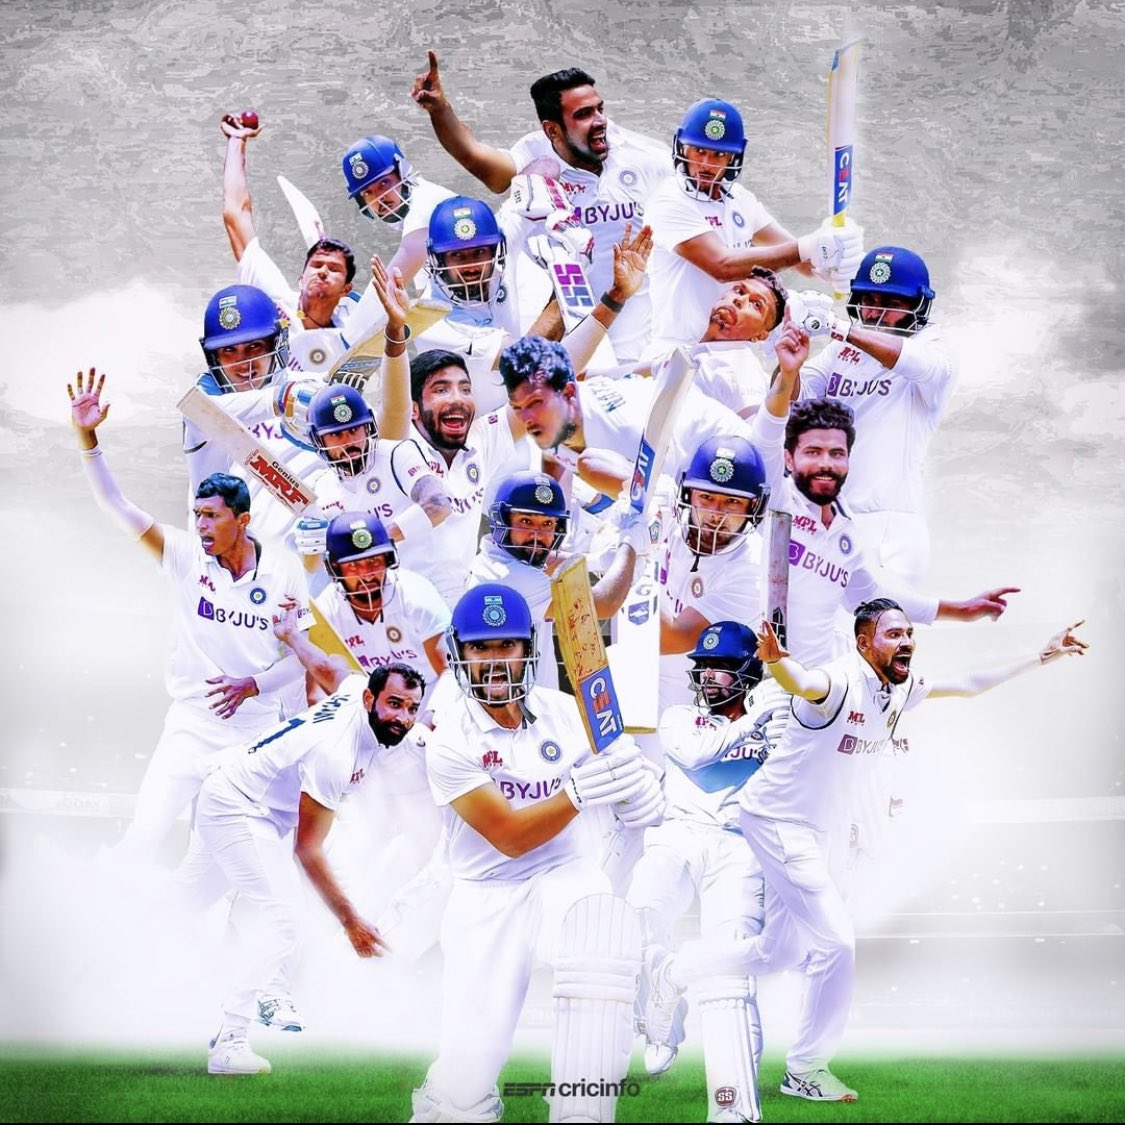 Great team performance #TeamIndia salute to you what a series win mesmerised. Never seen a performance like that before🙏🏻🙏🏻♥️♥️♥️🏏🏏#testcricket #JaiHind